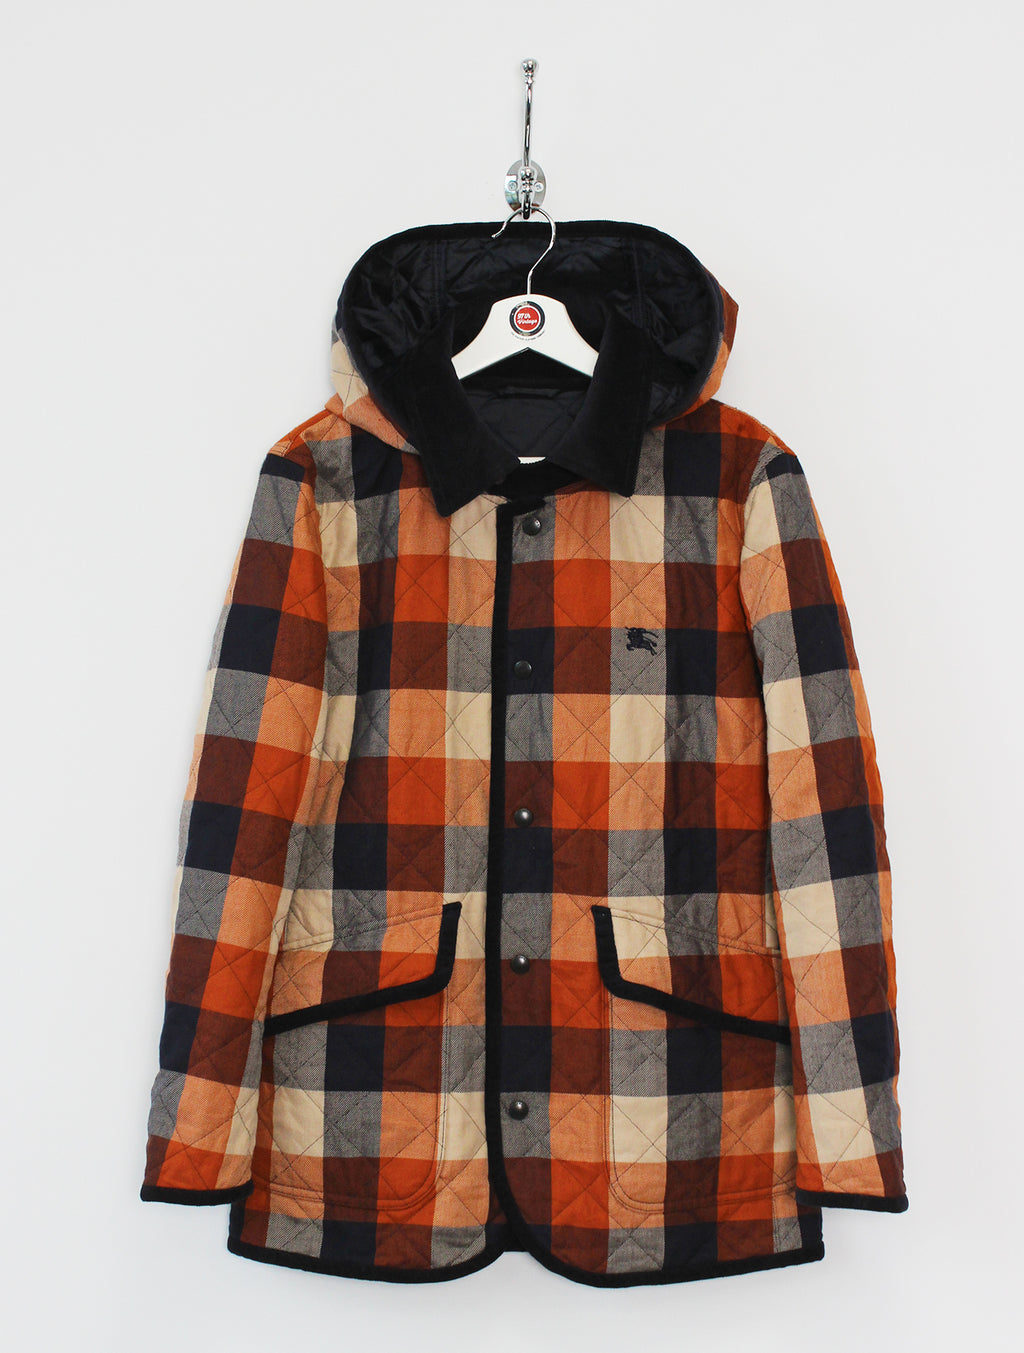 Burberry Quilted Coat (M)